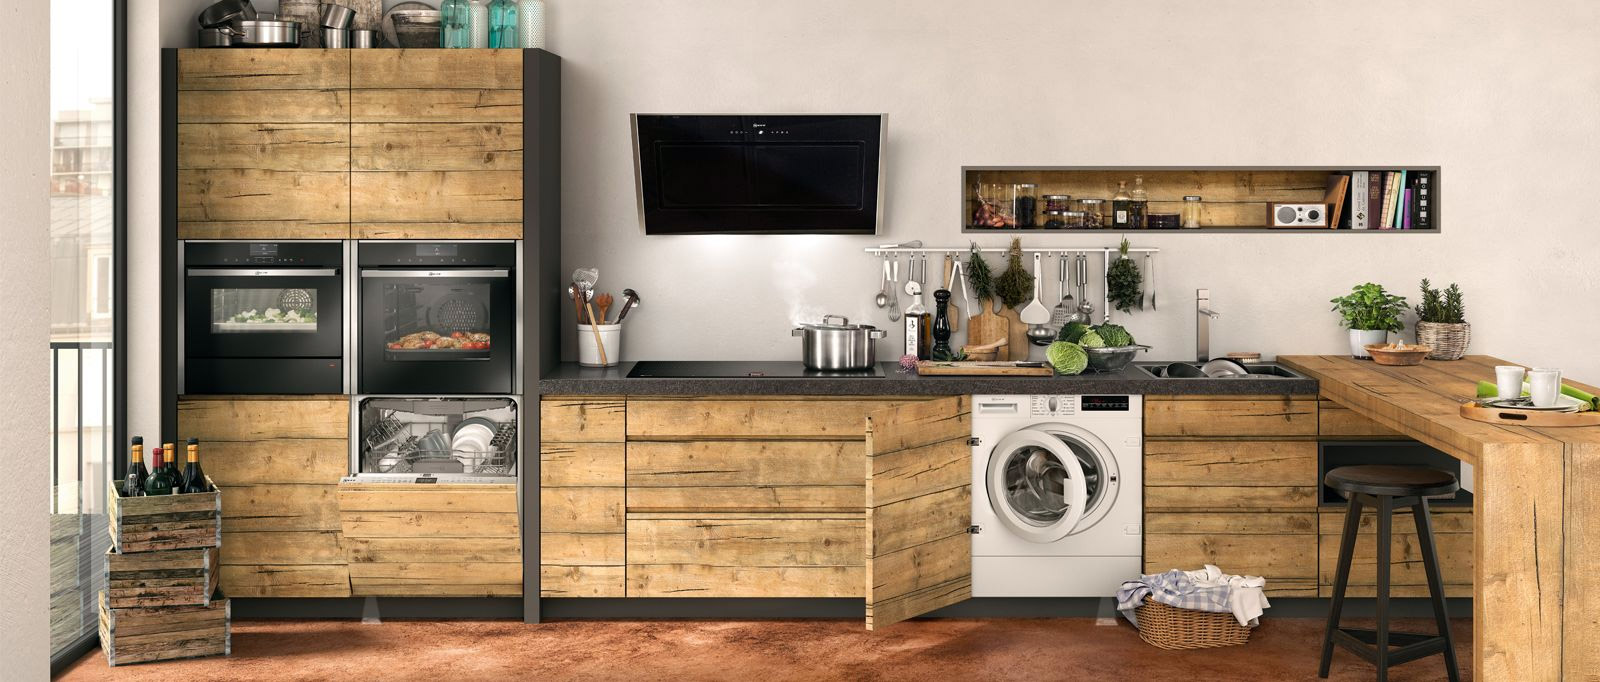 Neff Küche Neff Kitchen Appliances Brands Kuche Bagno